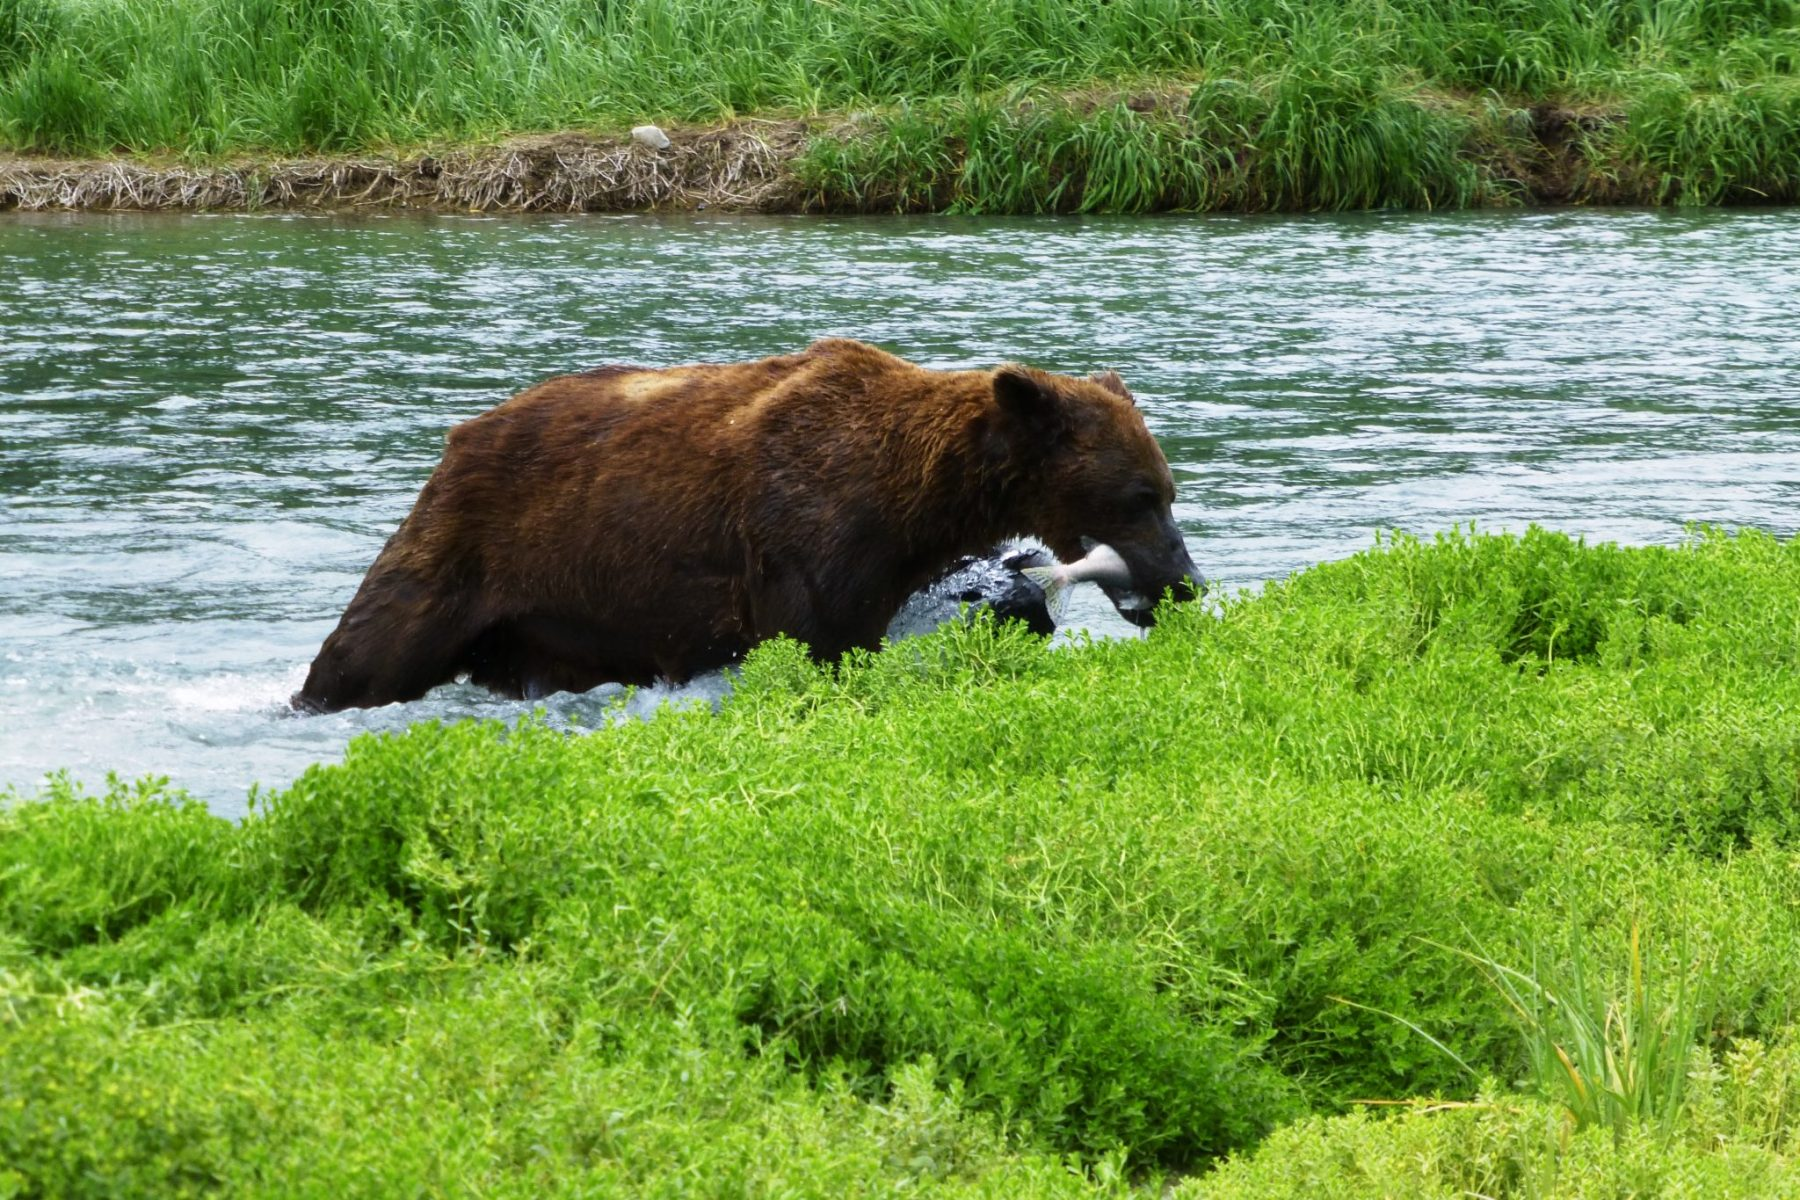 A brown bear coming out of the water with a fish in it's mouth in Katmai, one of the Alaska National parks